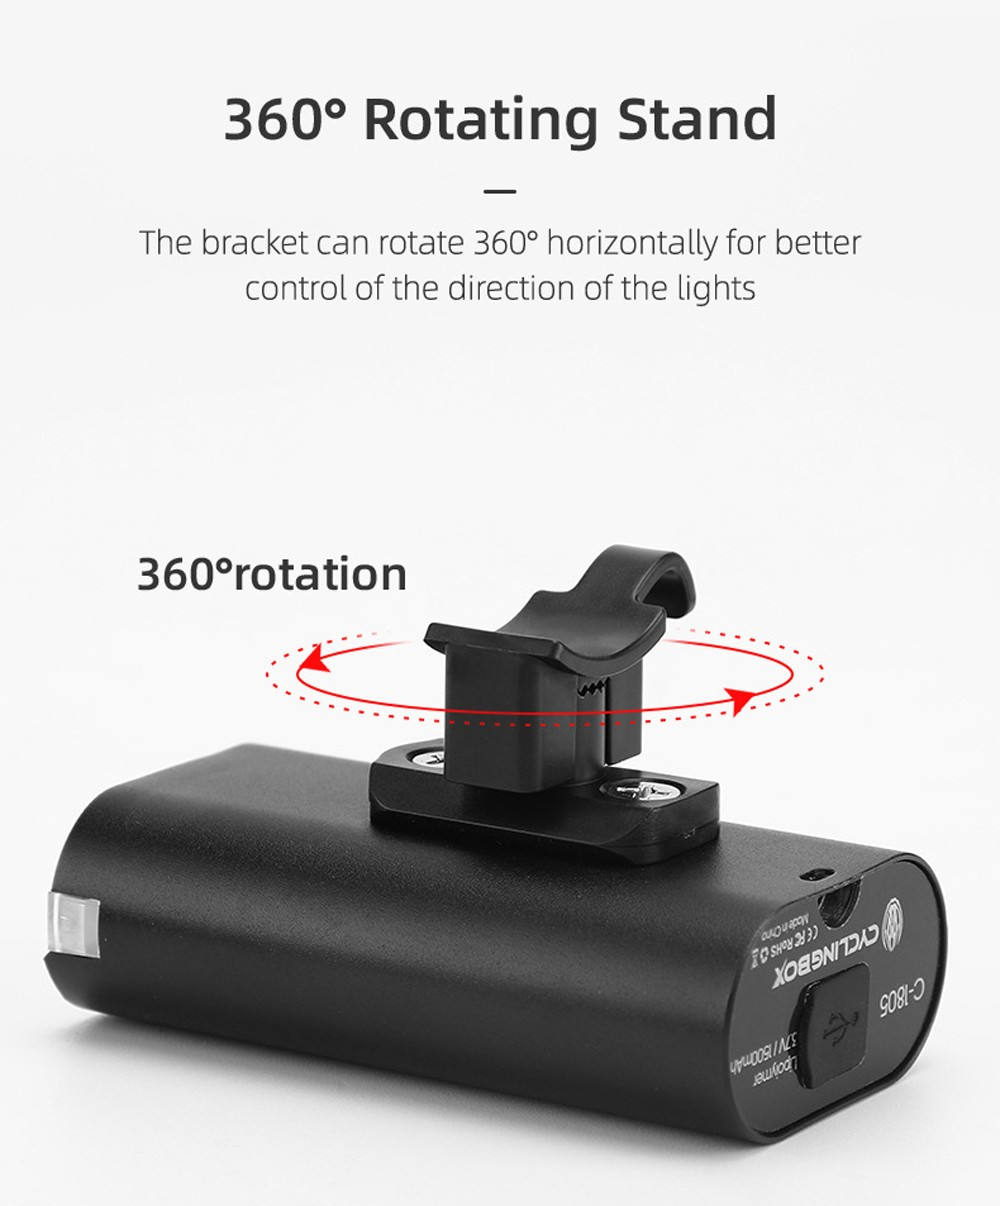 USB Charging Night Riding MTB Bicycle Aluminum Alloy Double-headed Front Light Bike Light with Battery Indicator Riding Equipment - Black